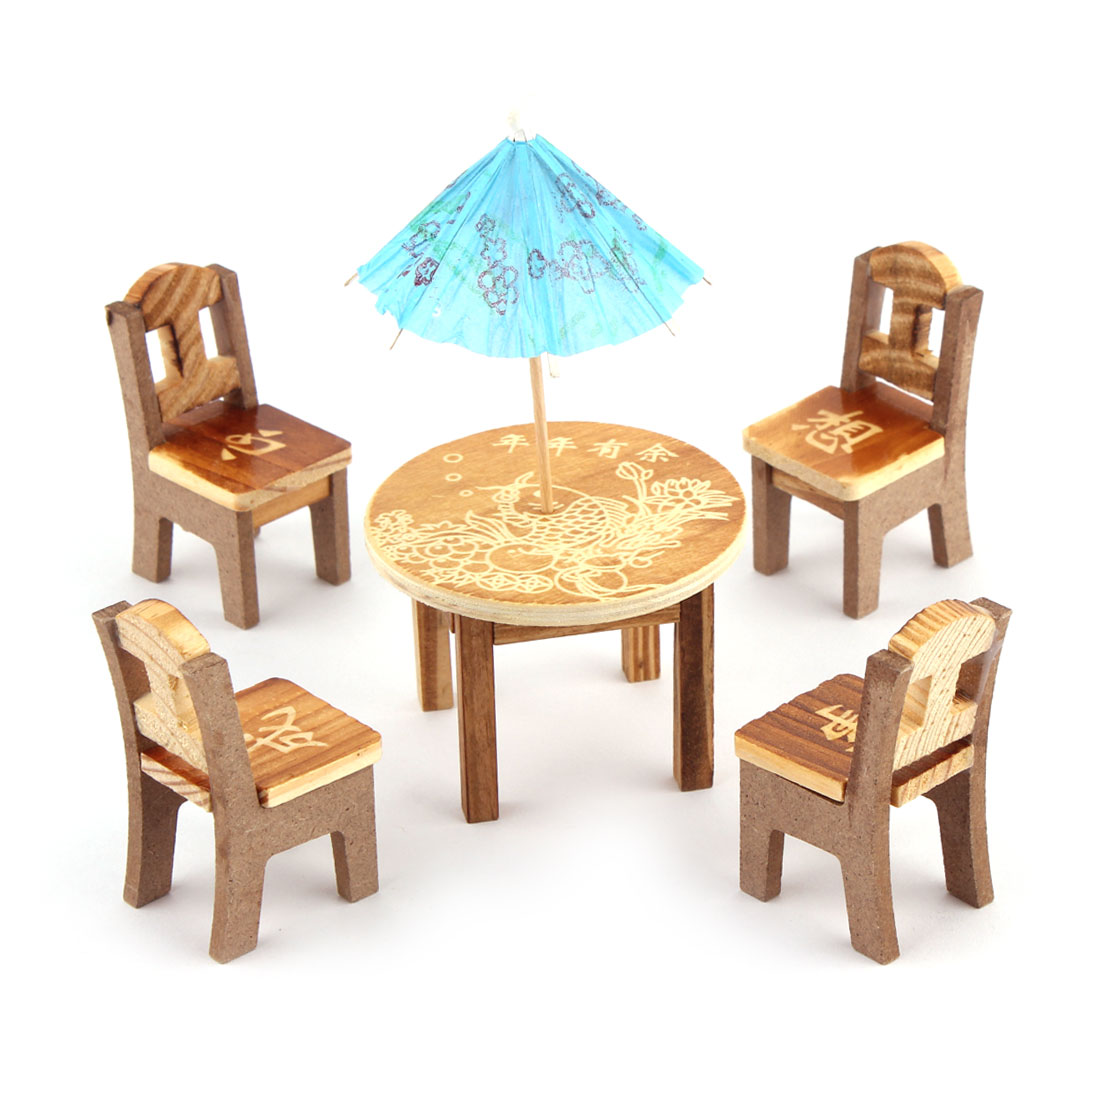 Home Office Wooden Artificial Simulation Table Desk Umbrella Display Craft Wood Color Blue Set 6 in 1